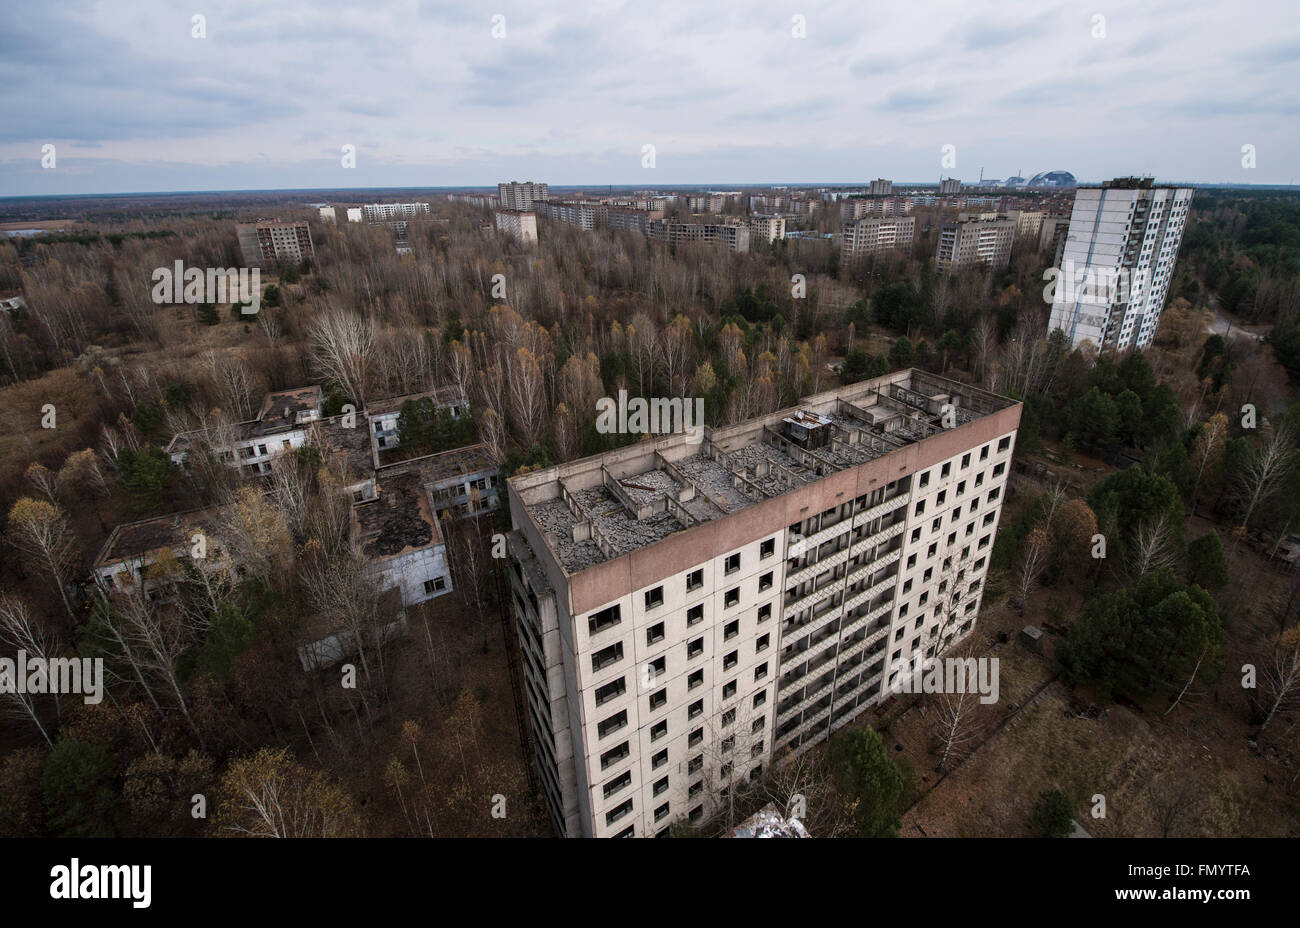 Aerial vue of Pripyat with the ill fated reactor in the background, Chernobyl scene of 1986 nuclear disaster - Stock Image